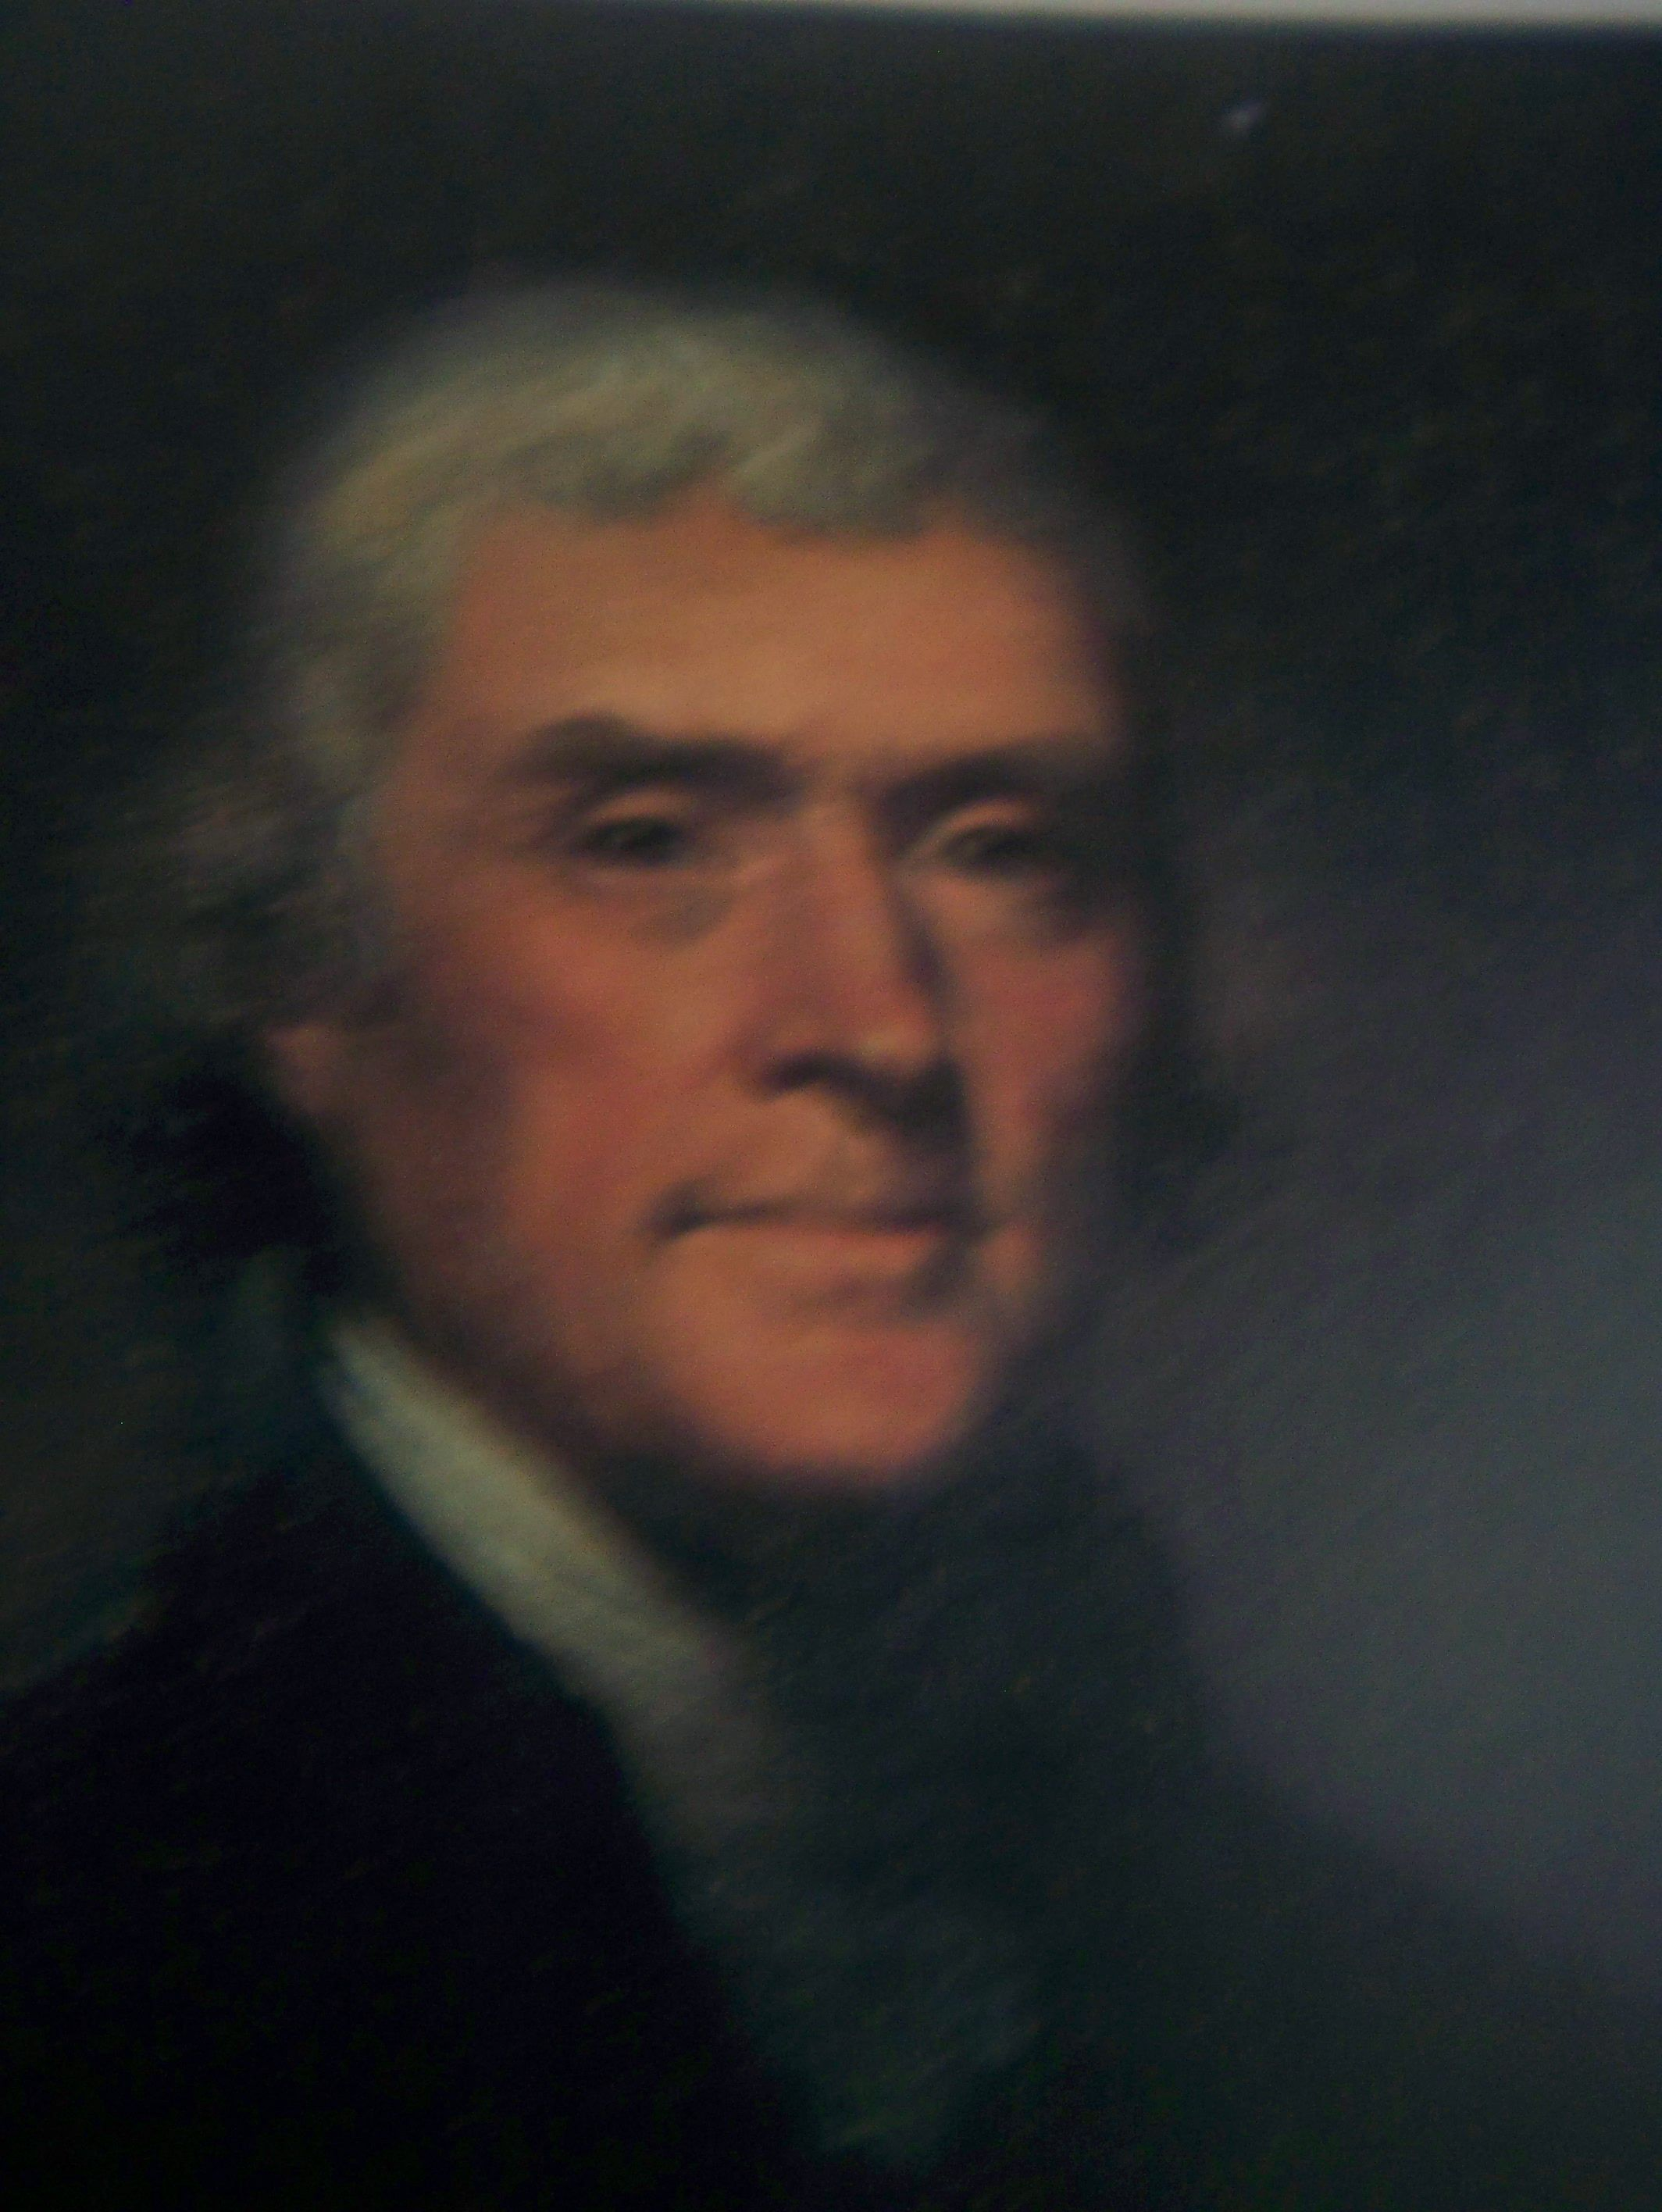 a biography of thomas jeferson an american president Thomas jefferson, the third president of the united states, was involved in politics from his early adult yearsthis article covers his early life and career, through his writing the declaration of independence, participation in the american revolutionary war, serving as governor of virginia, and election and service as vice-president to president john adams.